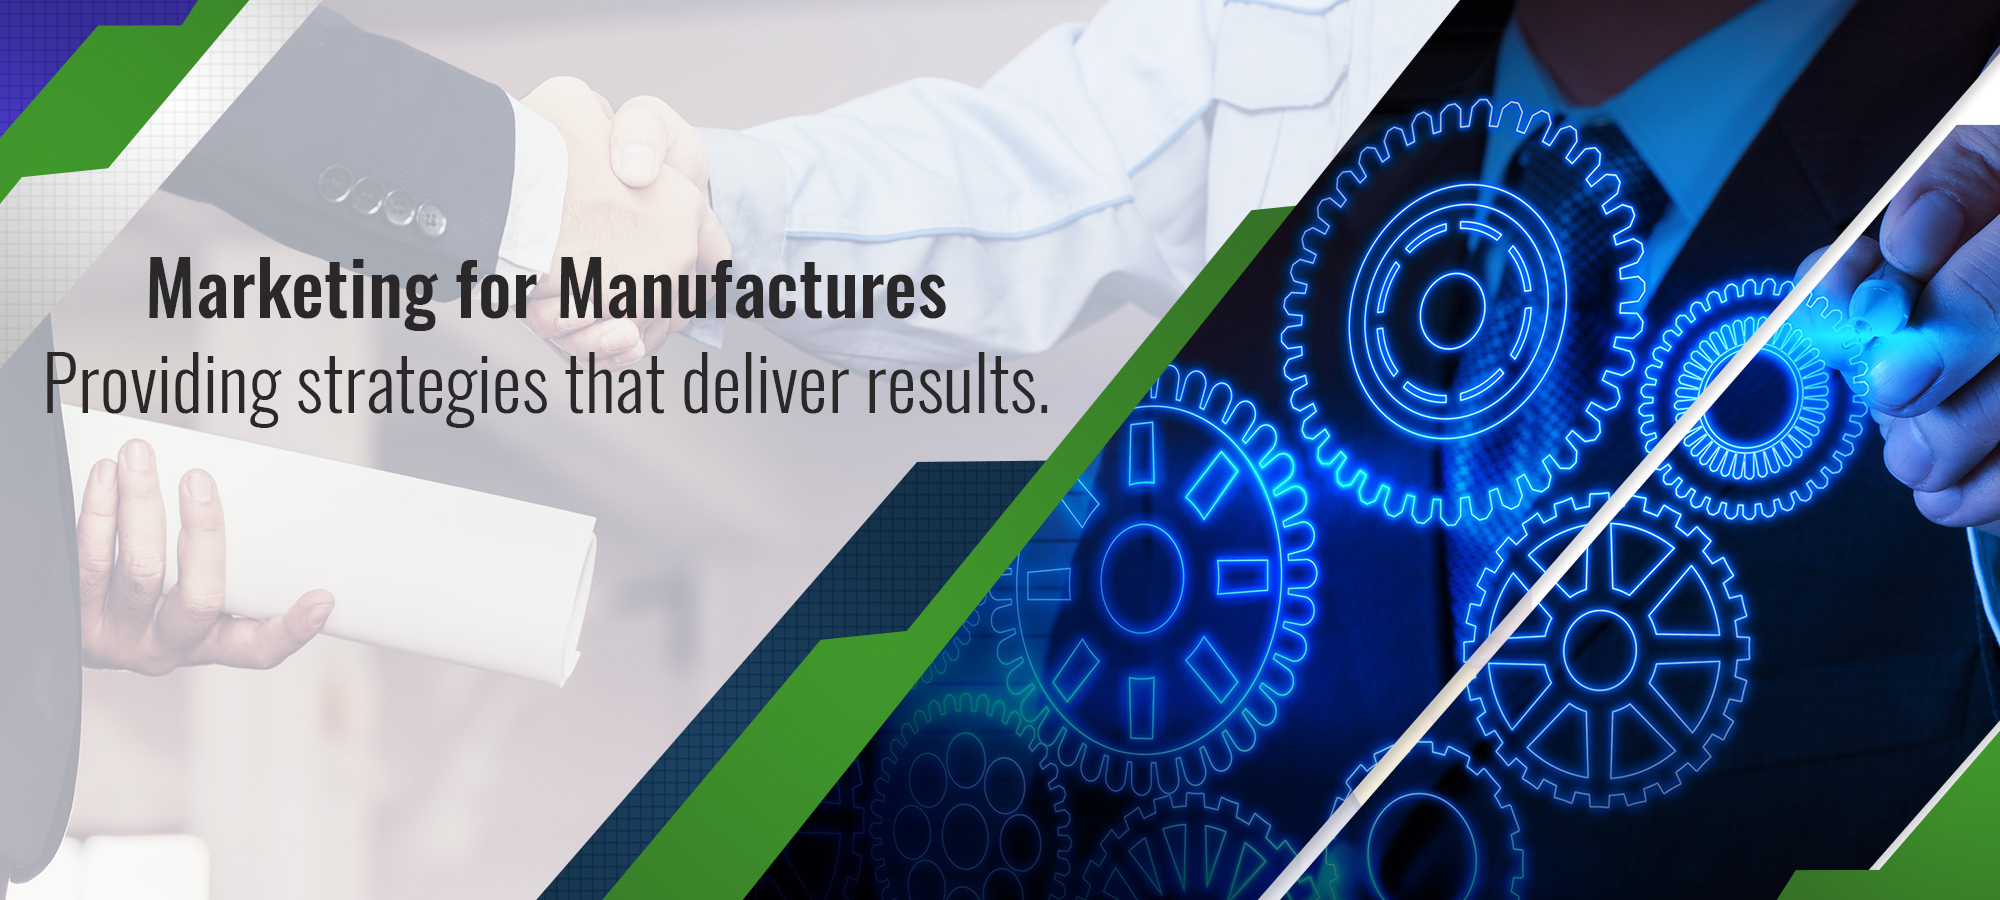 Marketiing for Manufactures